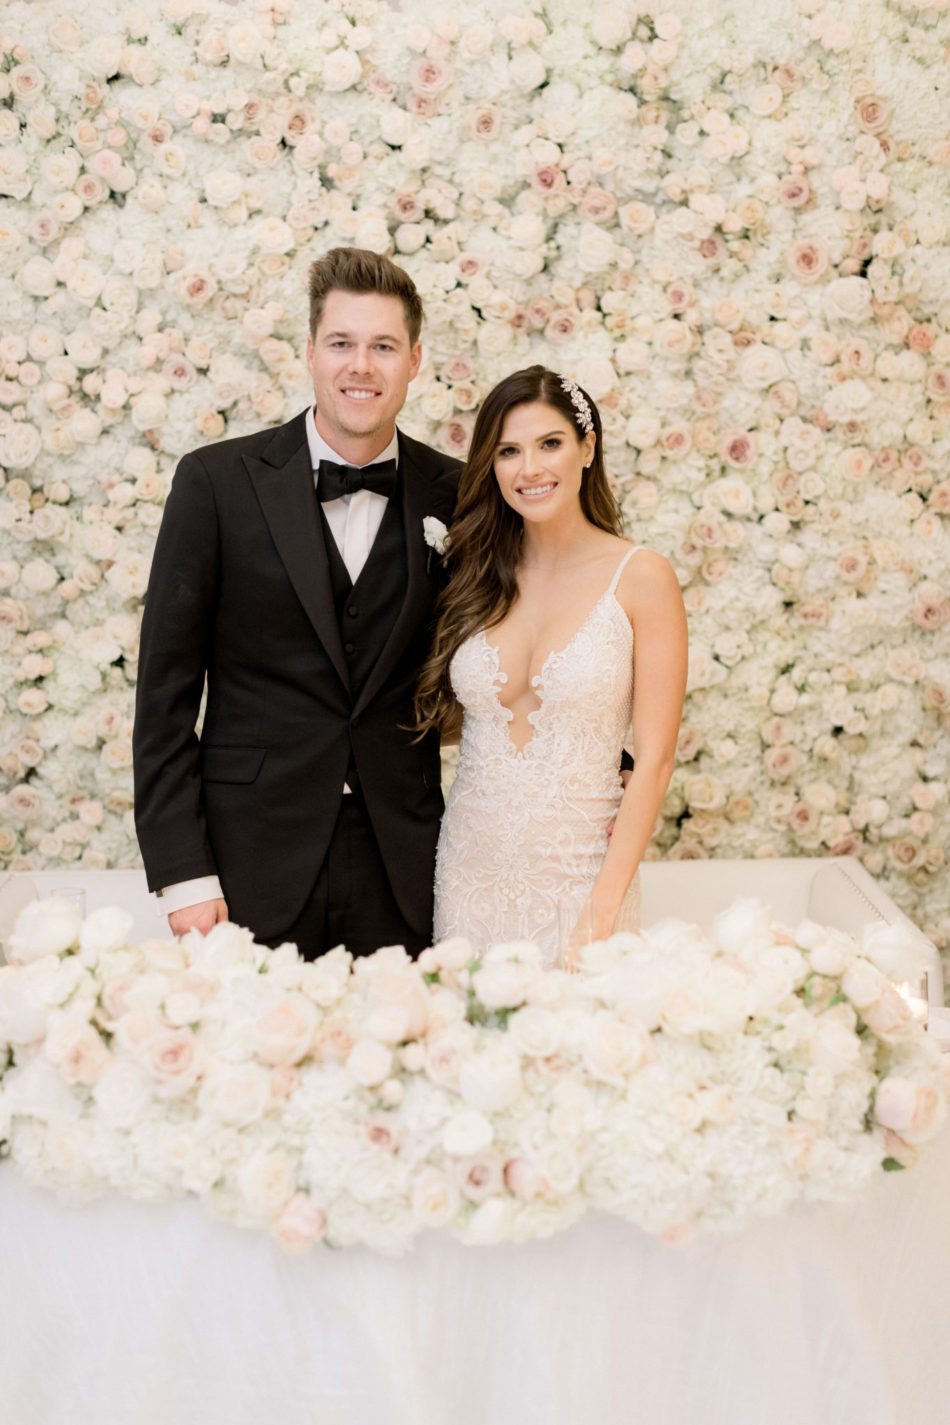 flower wall, floral wall, bride and groom, floral design, florist, wedding florist, wedding flowers, orange county weddings, orange county wedding florist, orange county florist, orange county floral design, flowers by cina